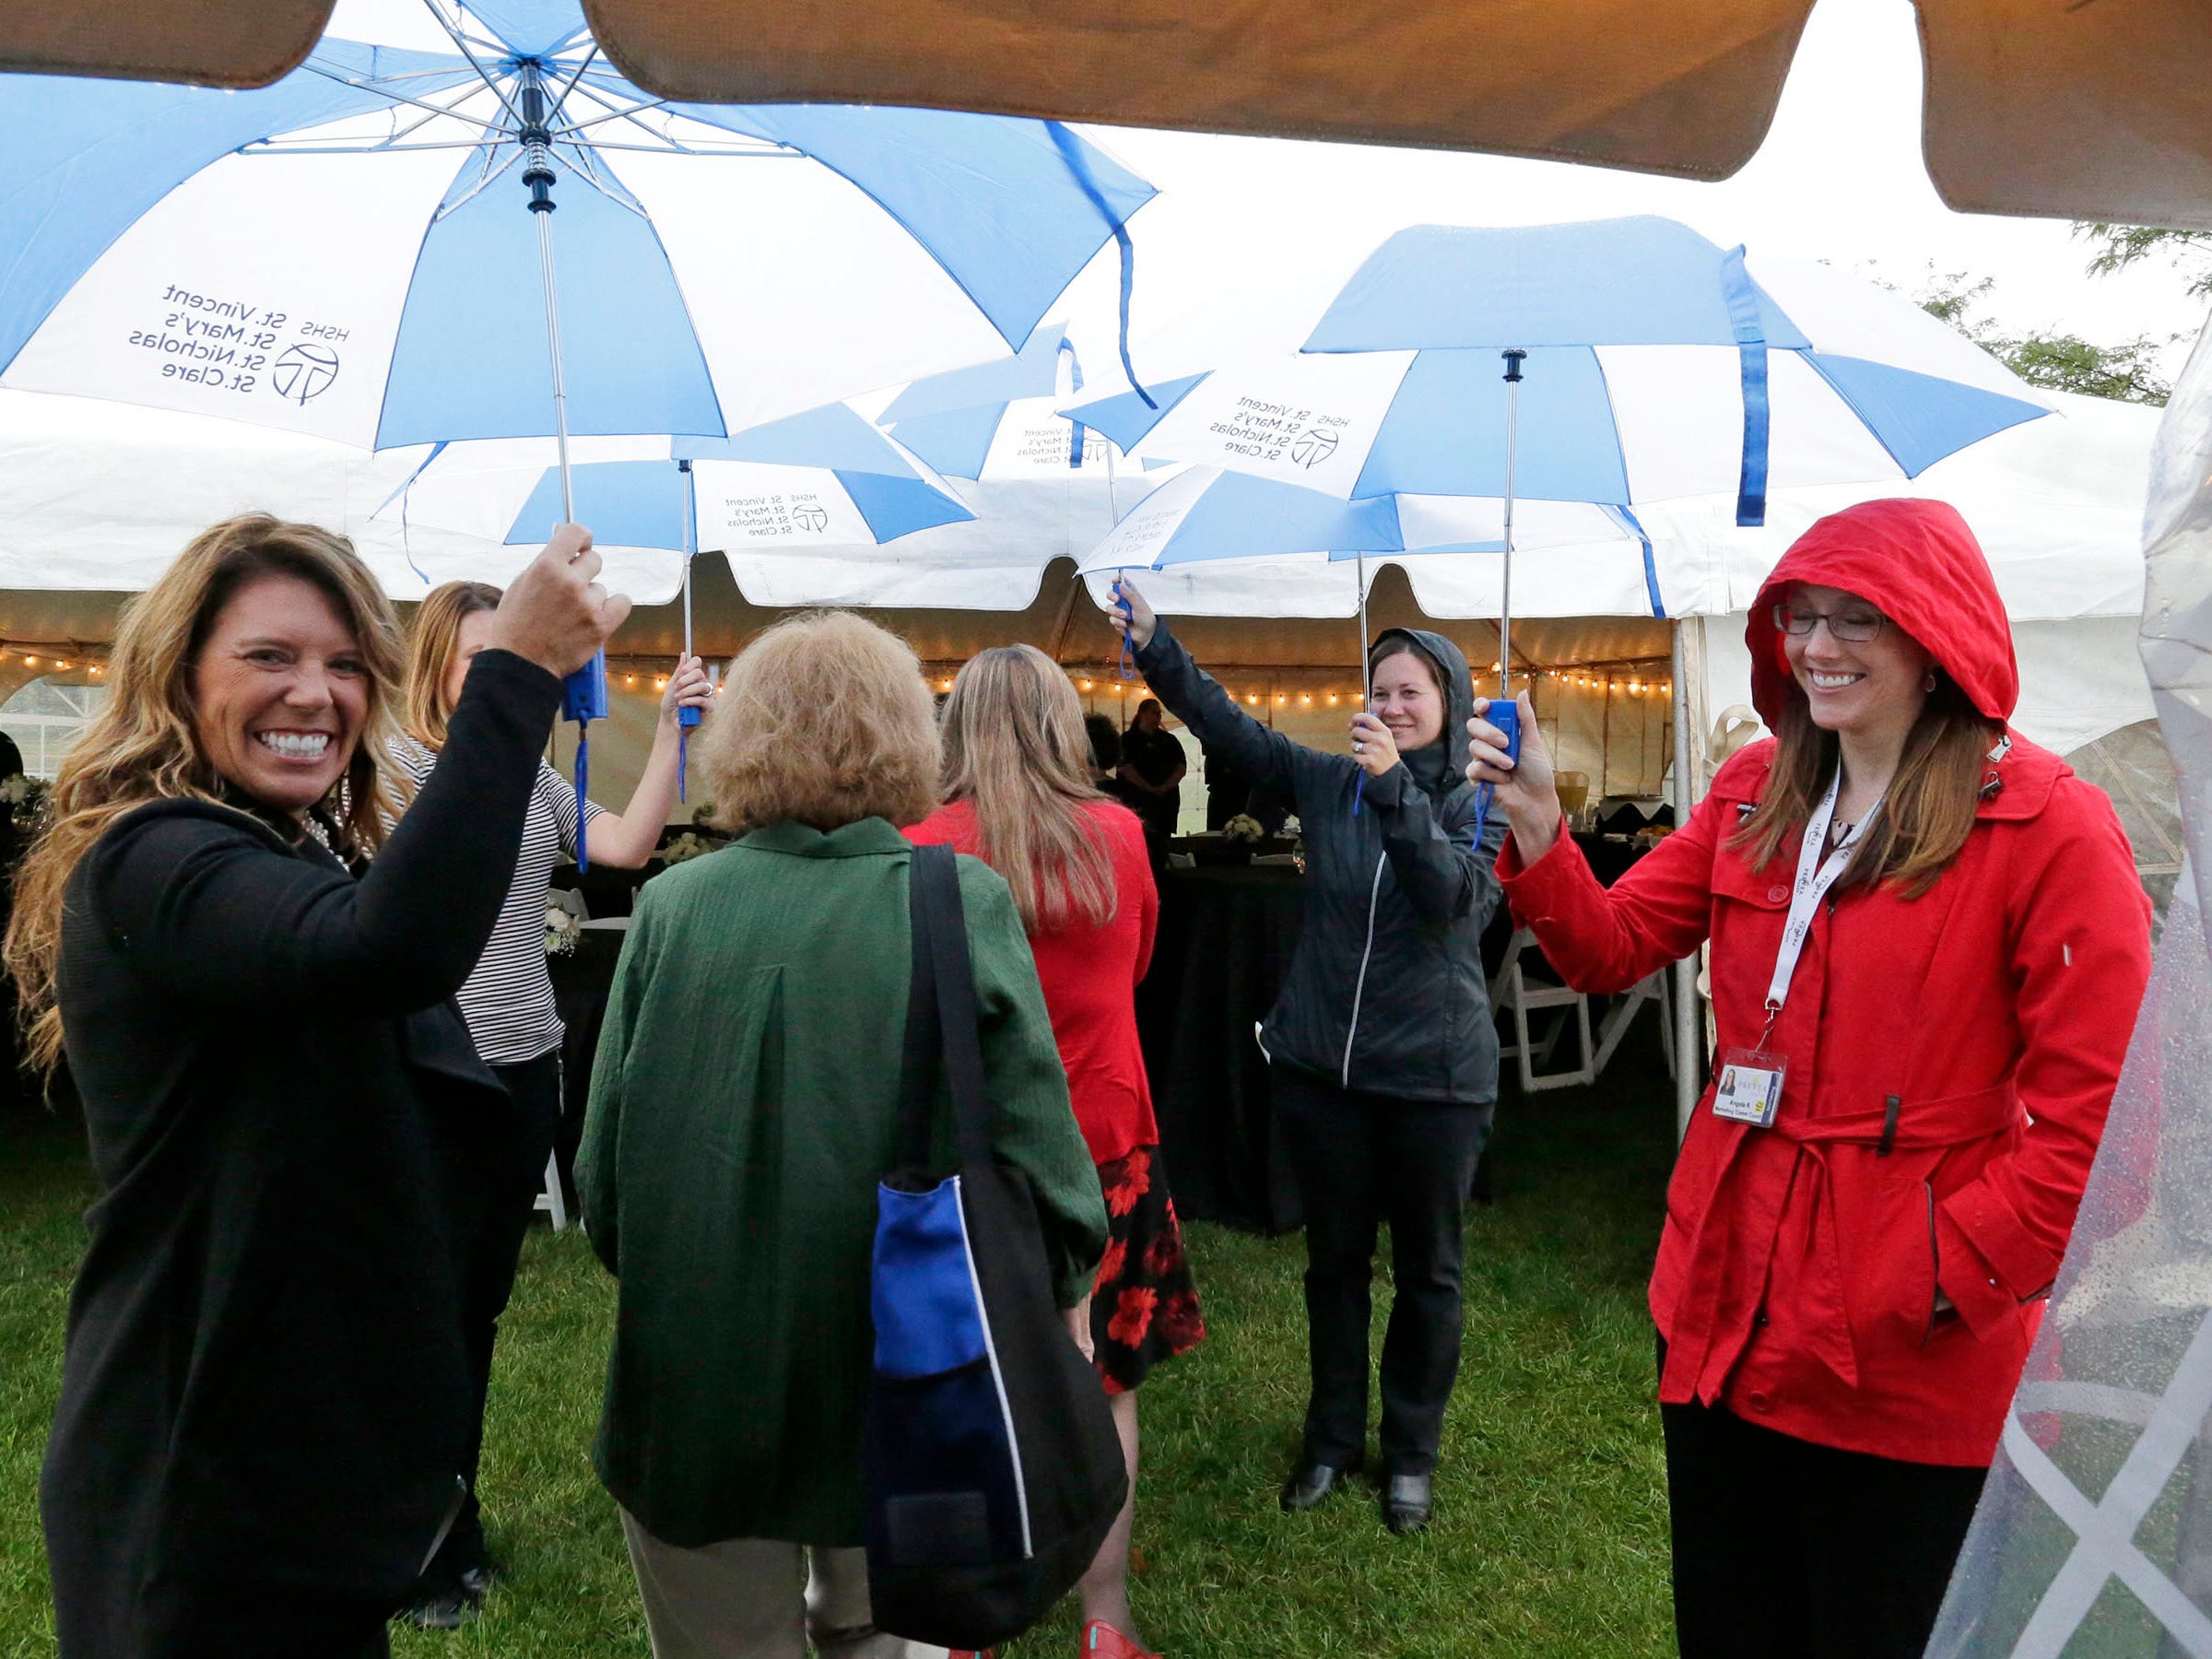 People walk to a reception tent under umbrellas at HSHS St. Nicholas Hospital during a Mass of Celebration for the new CEO Justin Selle, Wednesday, September 19, 2018, in Sheboygan, Wis.